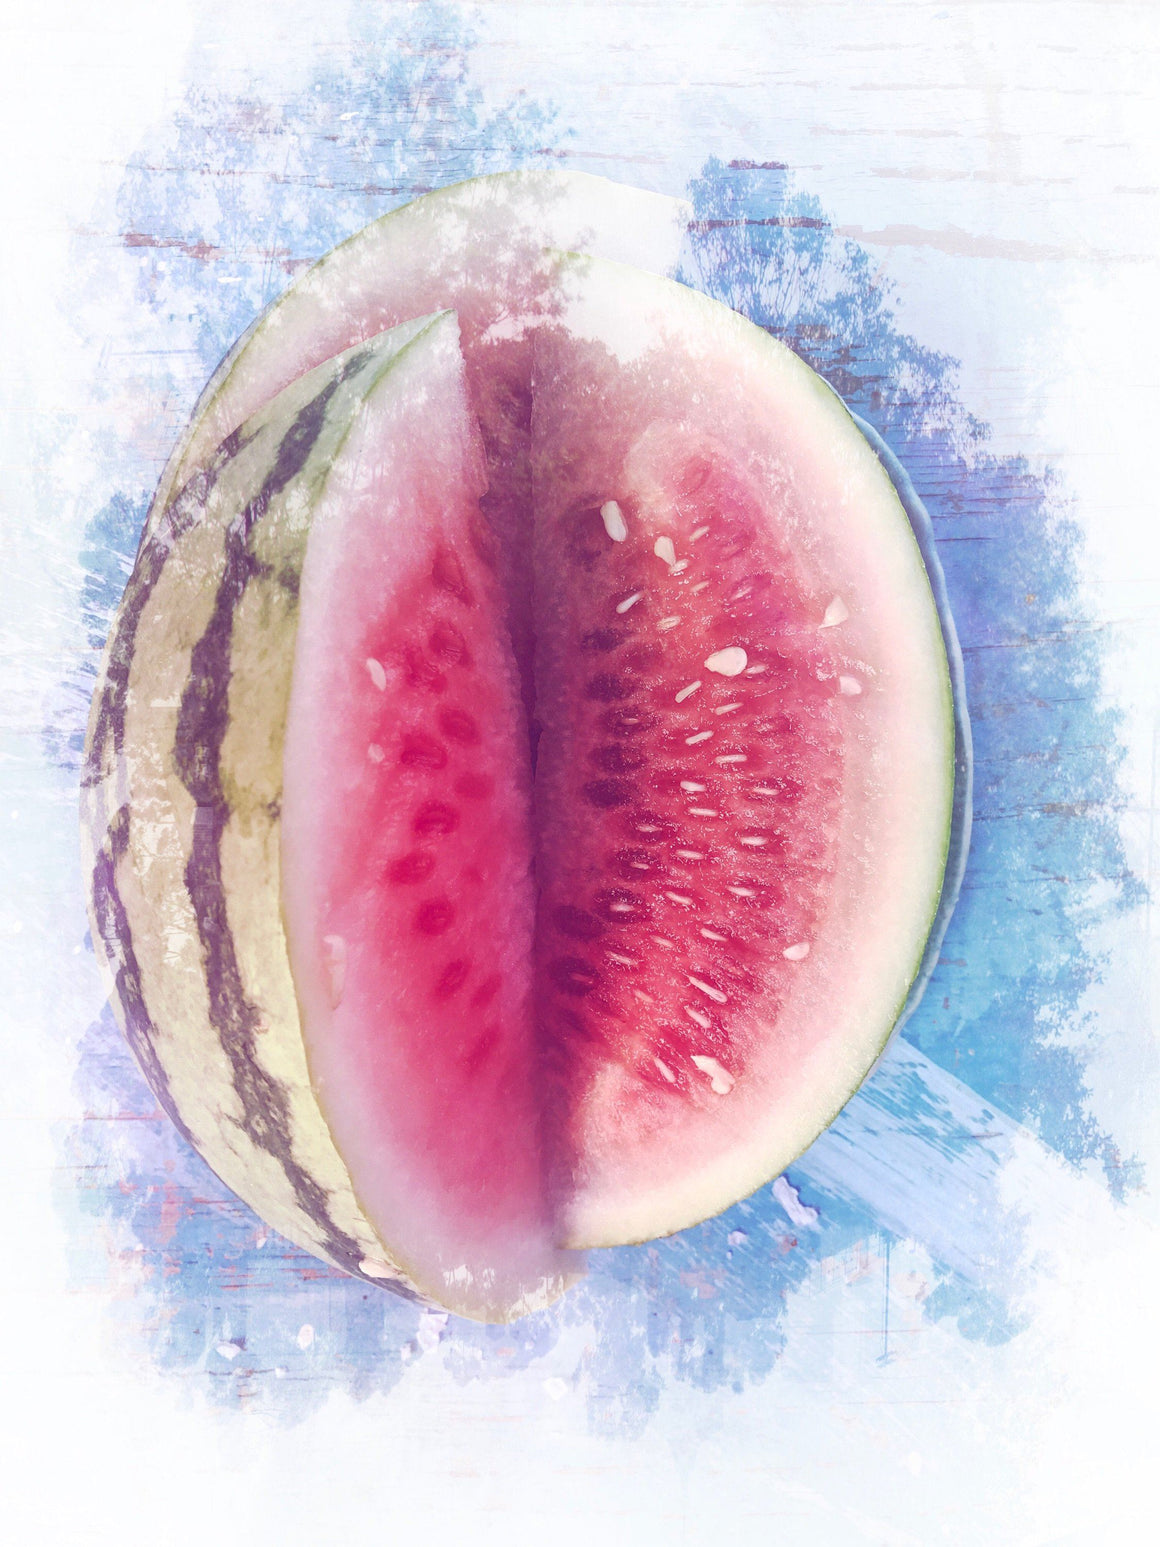 Watermelon - David Loftus Print Shop